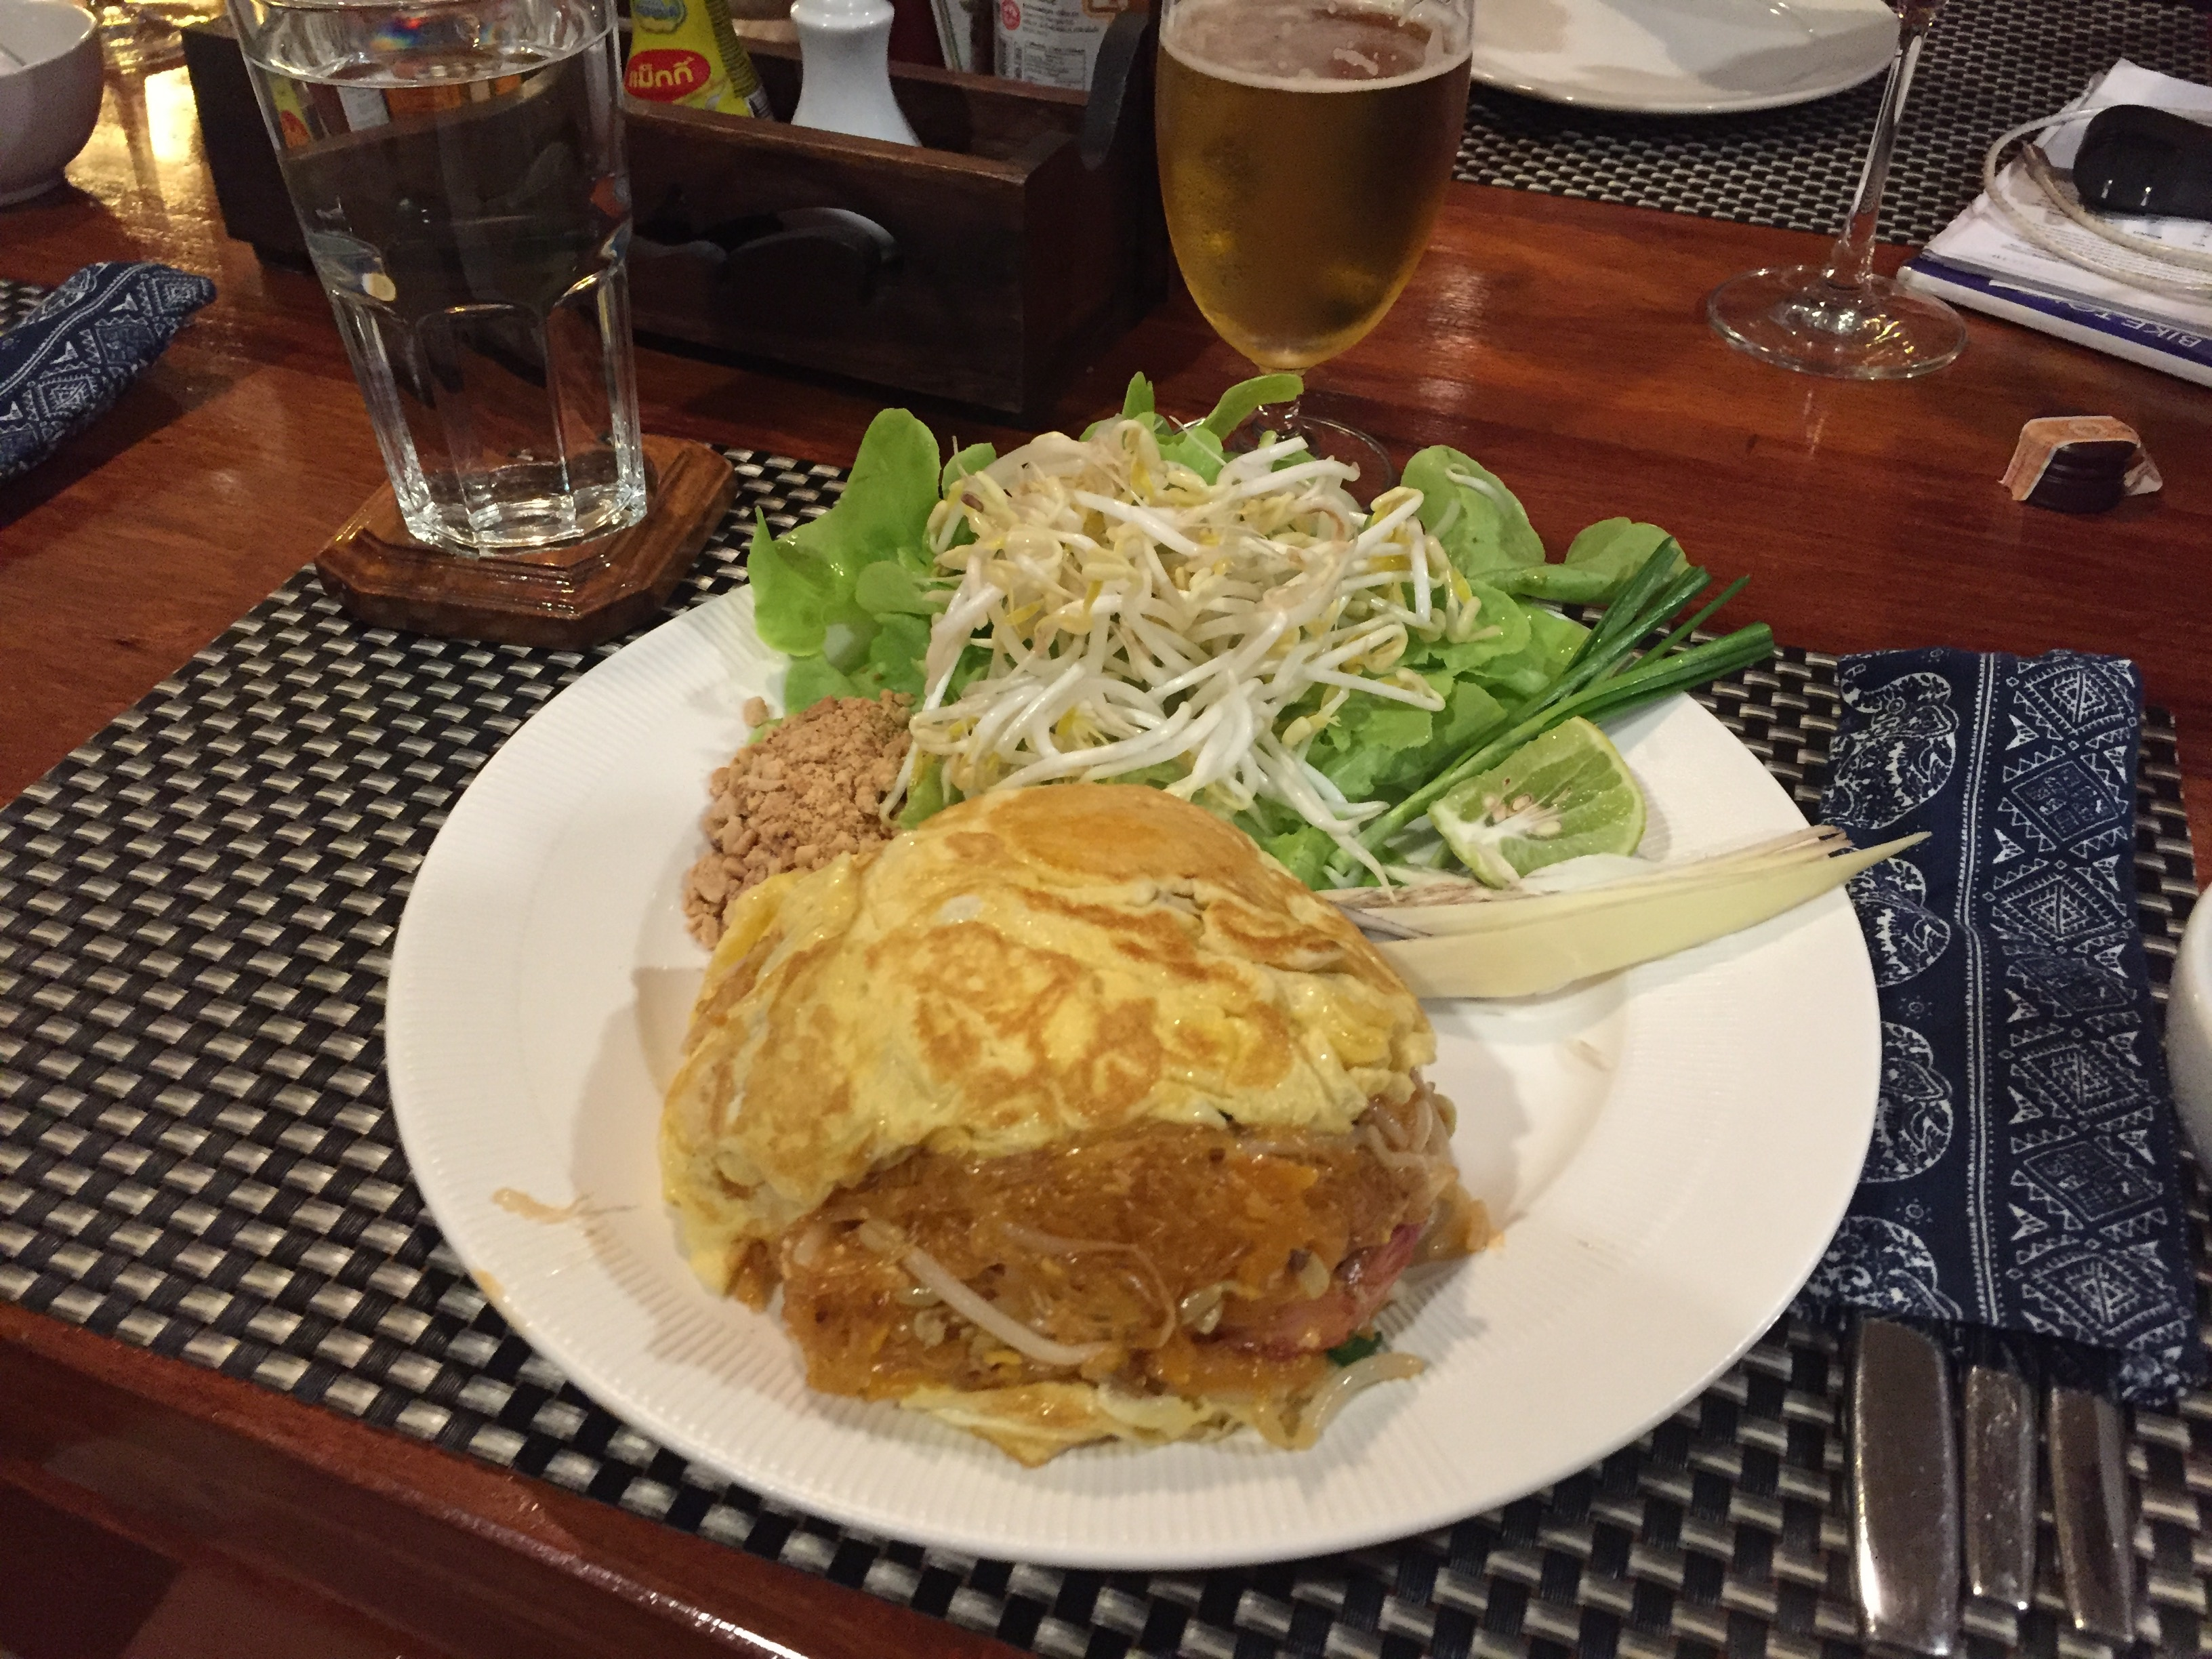 One of the best meals on the road, the Pad Thai Omlette